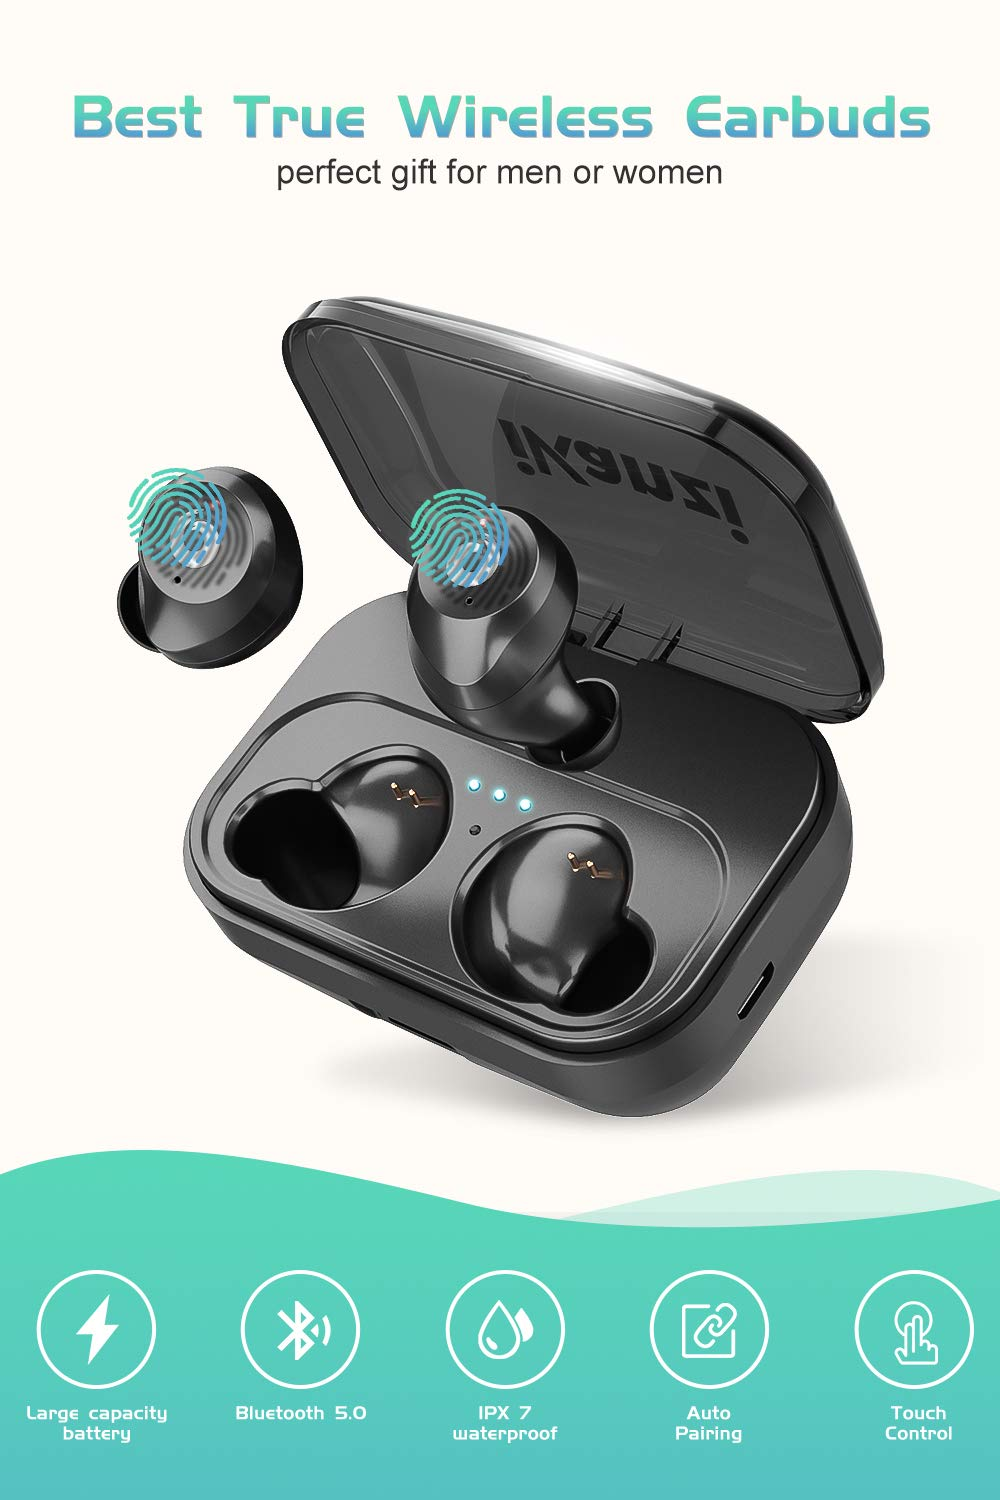 Bluetooth Earbuds True Wireless Earbuds 2019 Newest Version Bluetooth 50 IPX7 Waterproof 3D Stereo